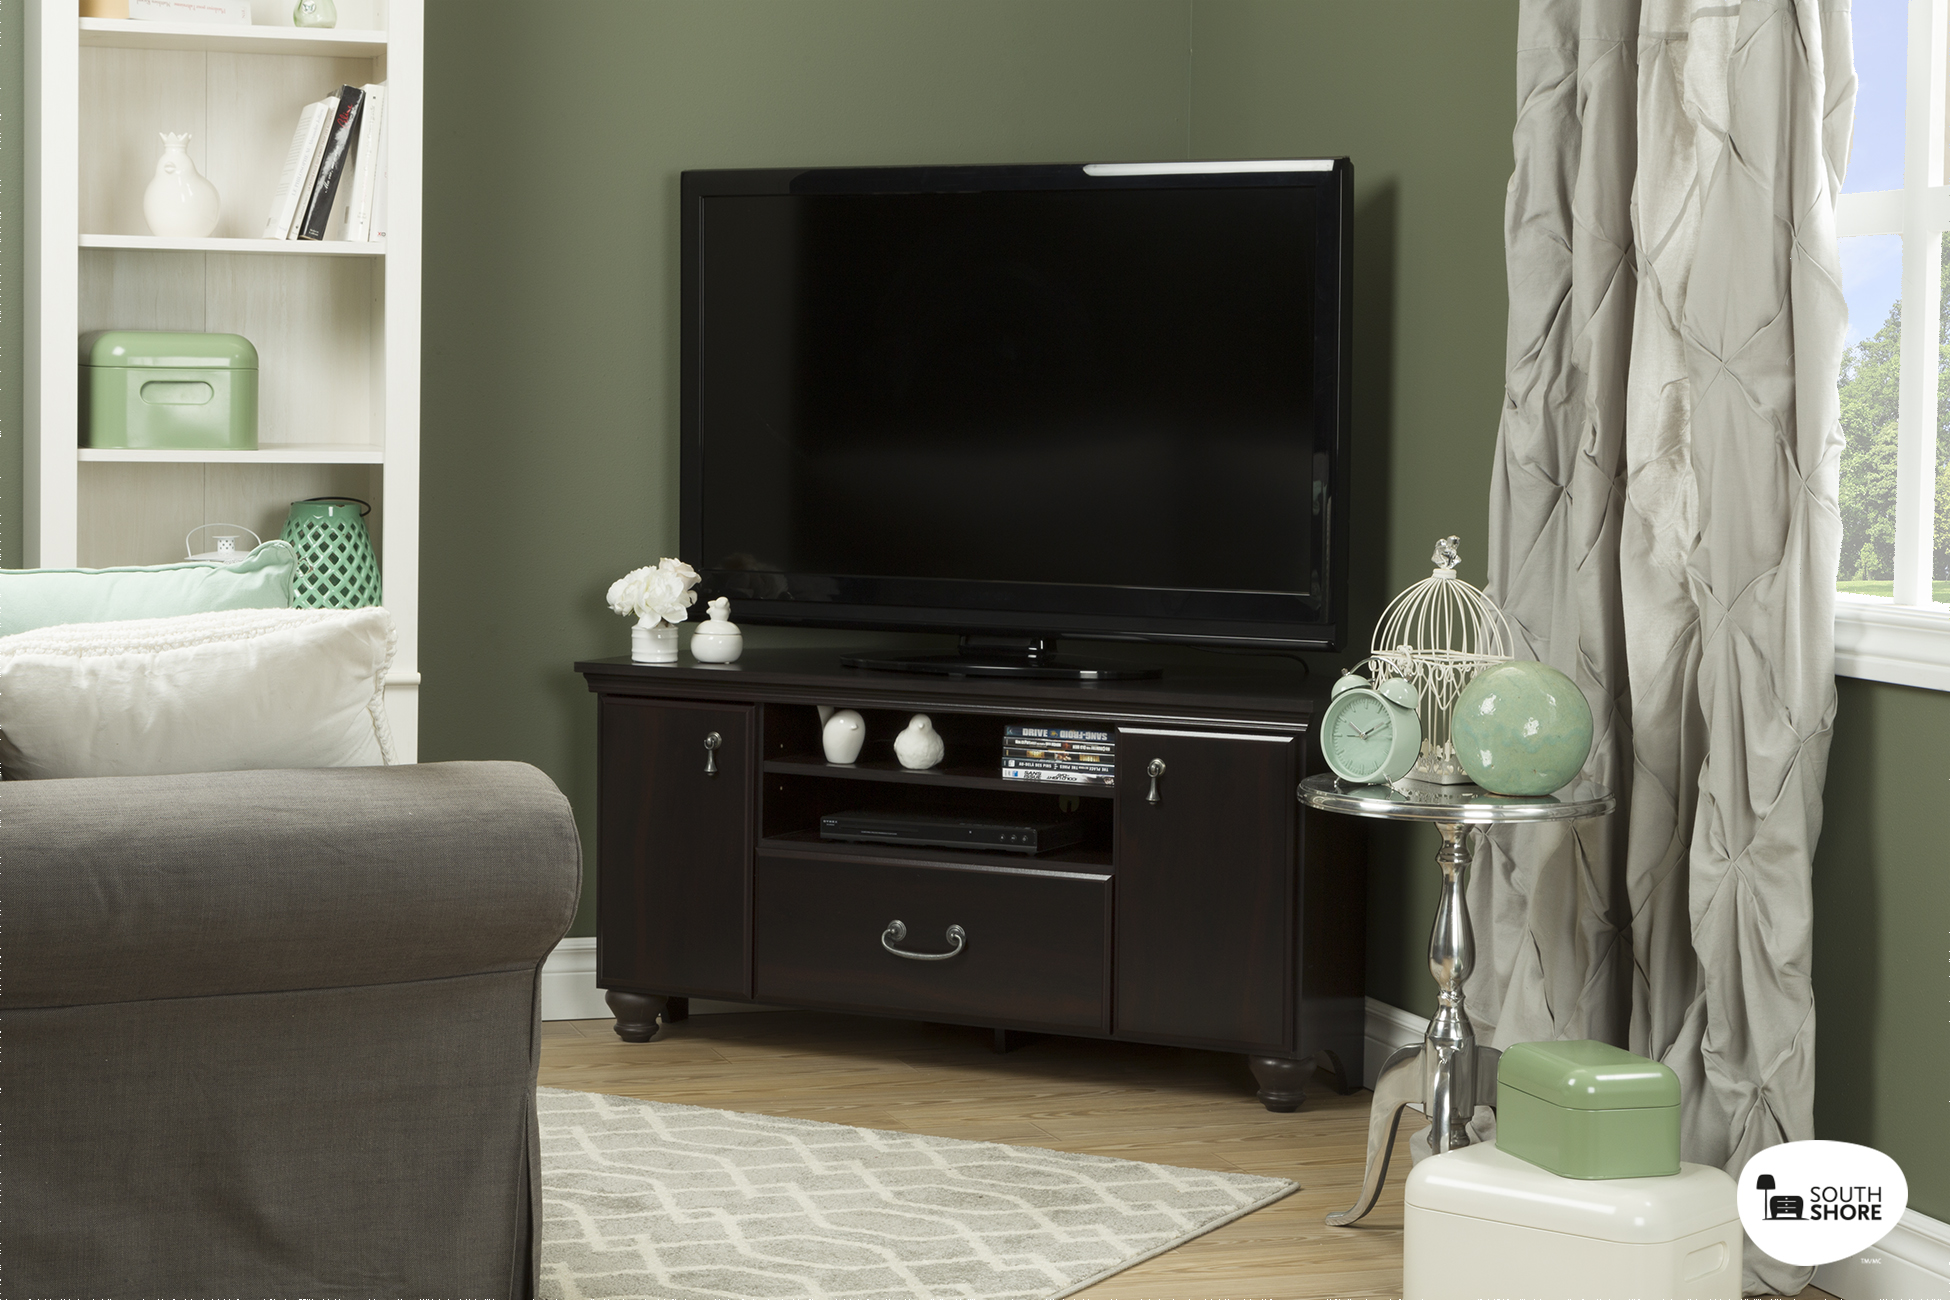 South Shore Noble Corner TV Stand for TVs up to 60'' in Multiple Finishes by South Shore